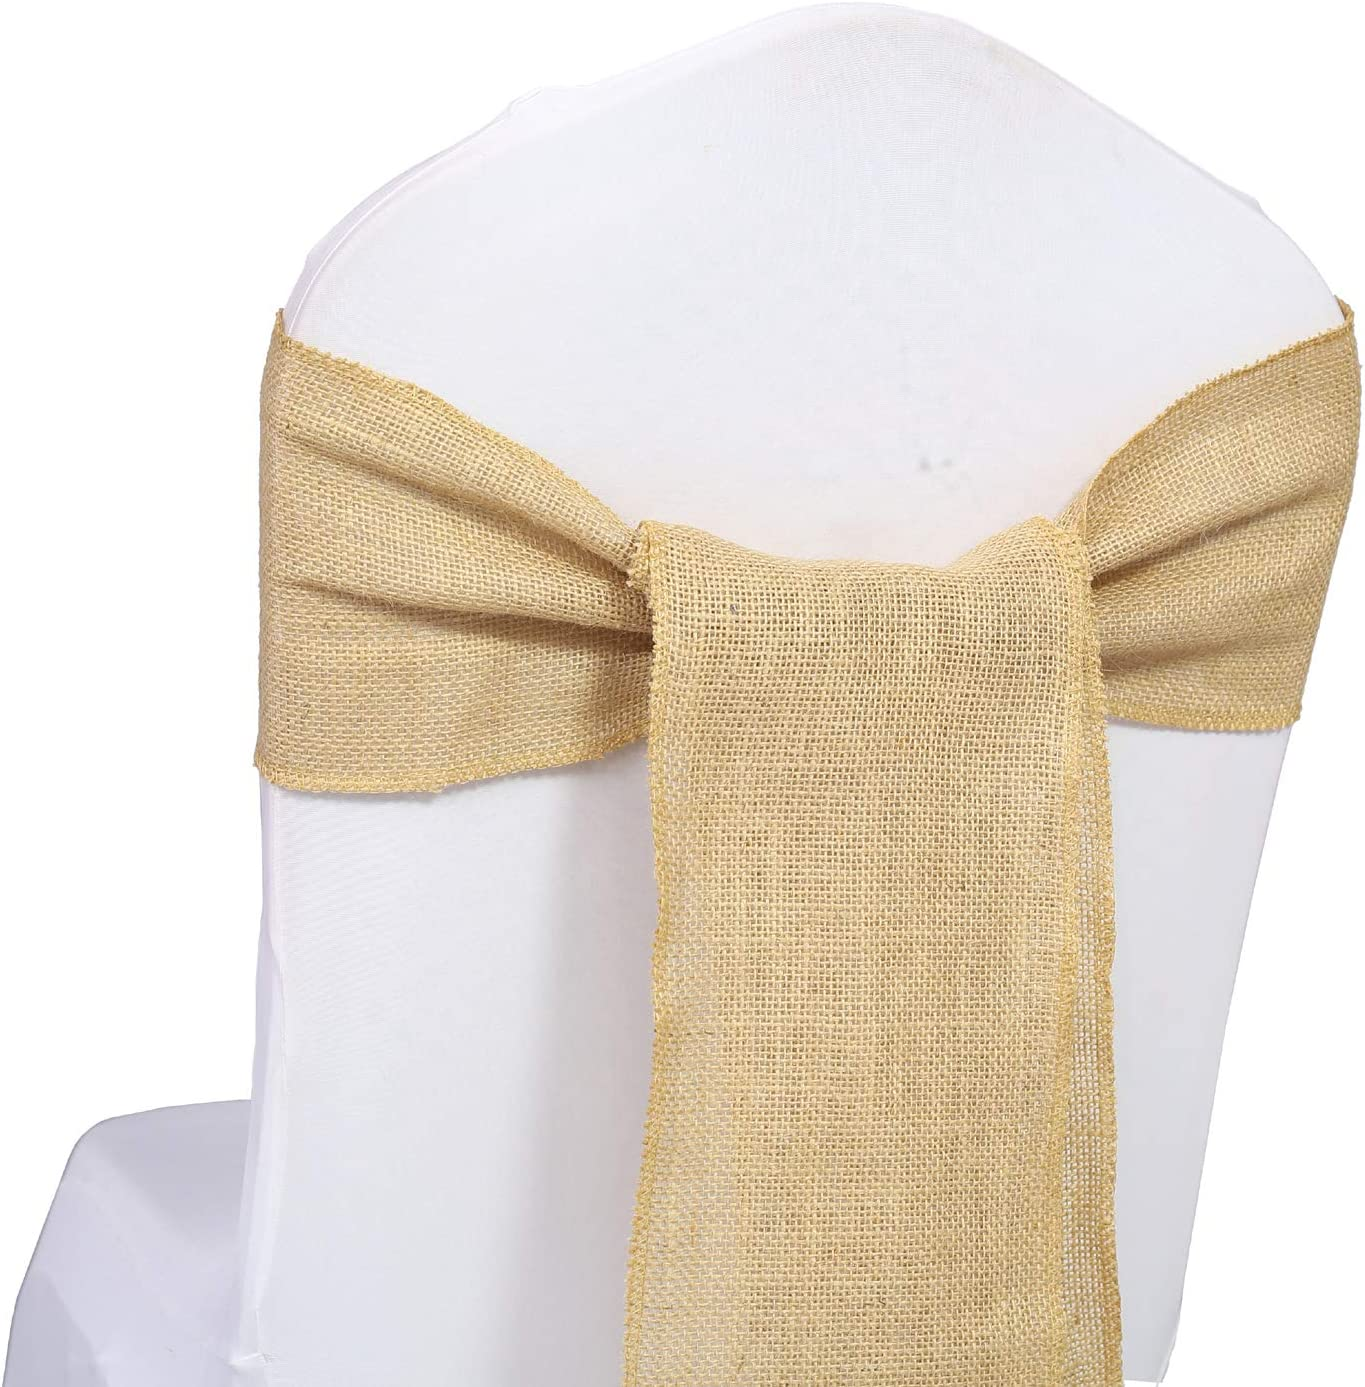 mds Pack of いつでも送料無料 10 Natural Burlap Bows Country V Sashes 再再販 Jute